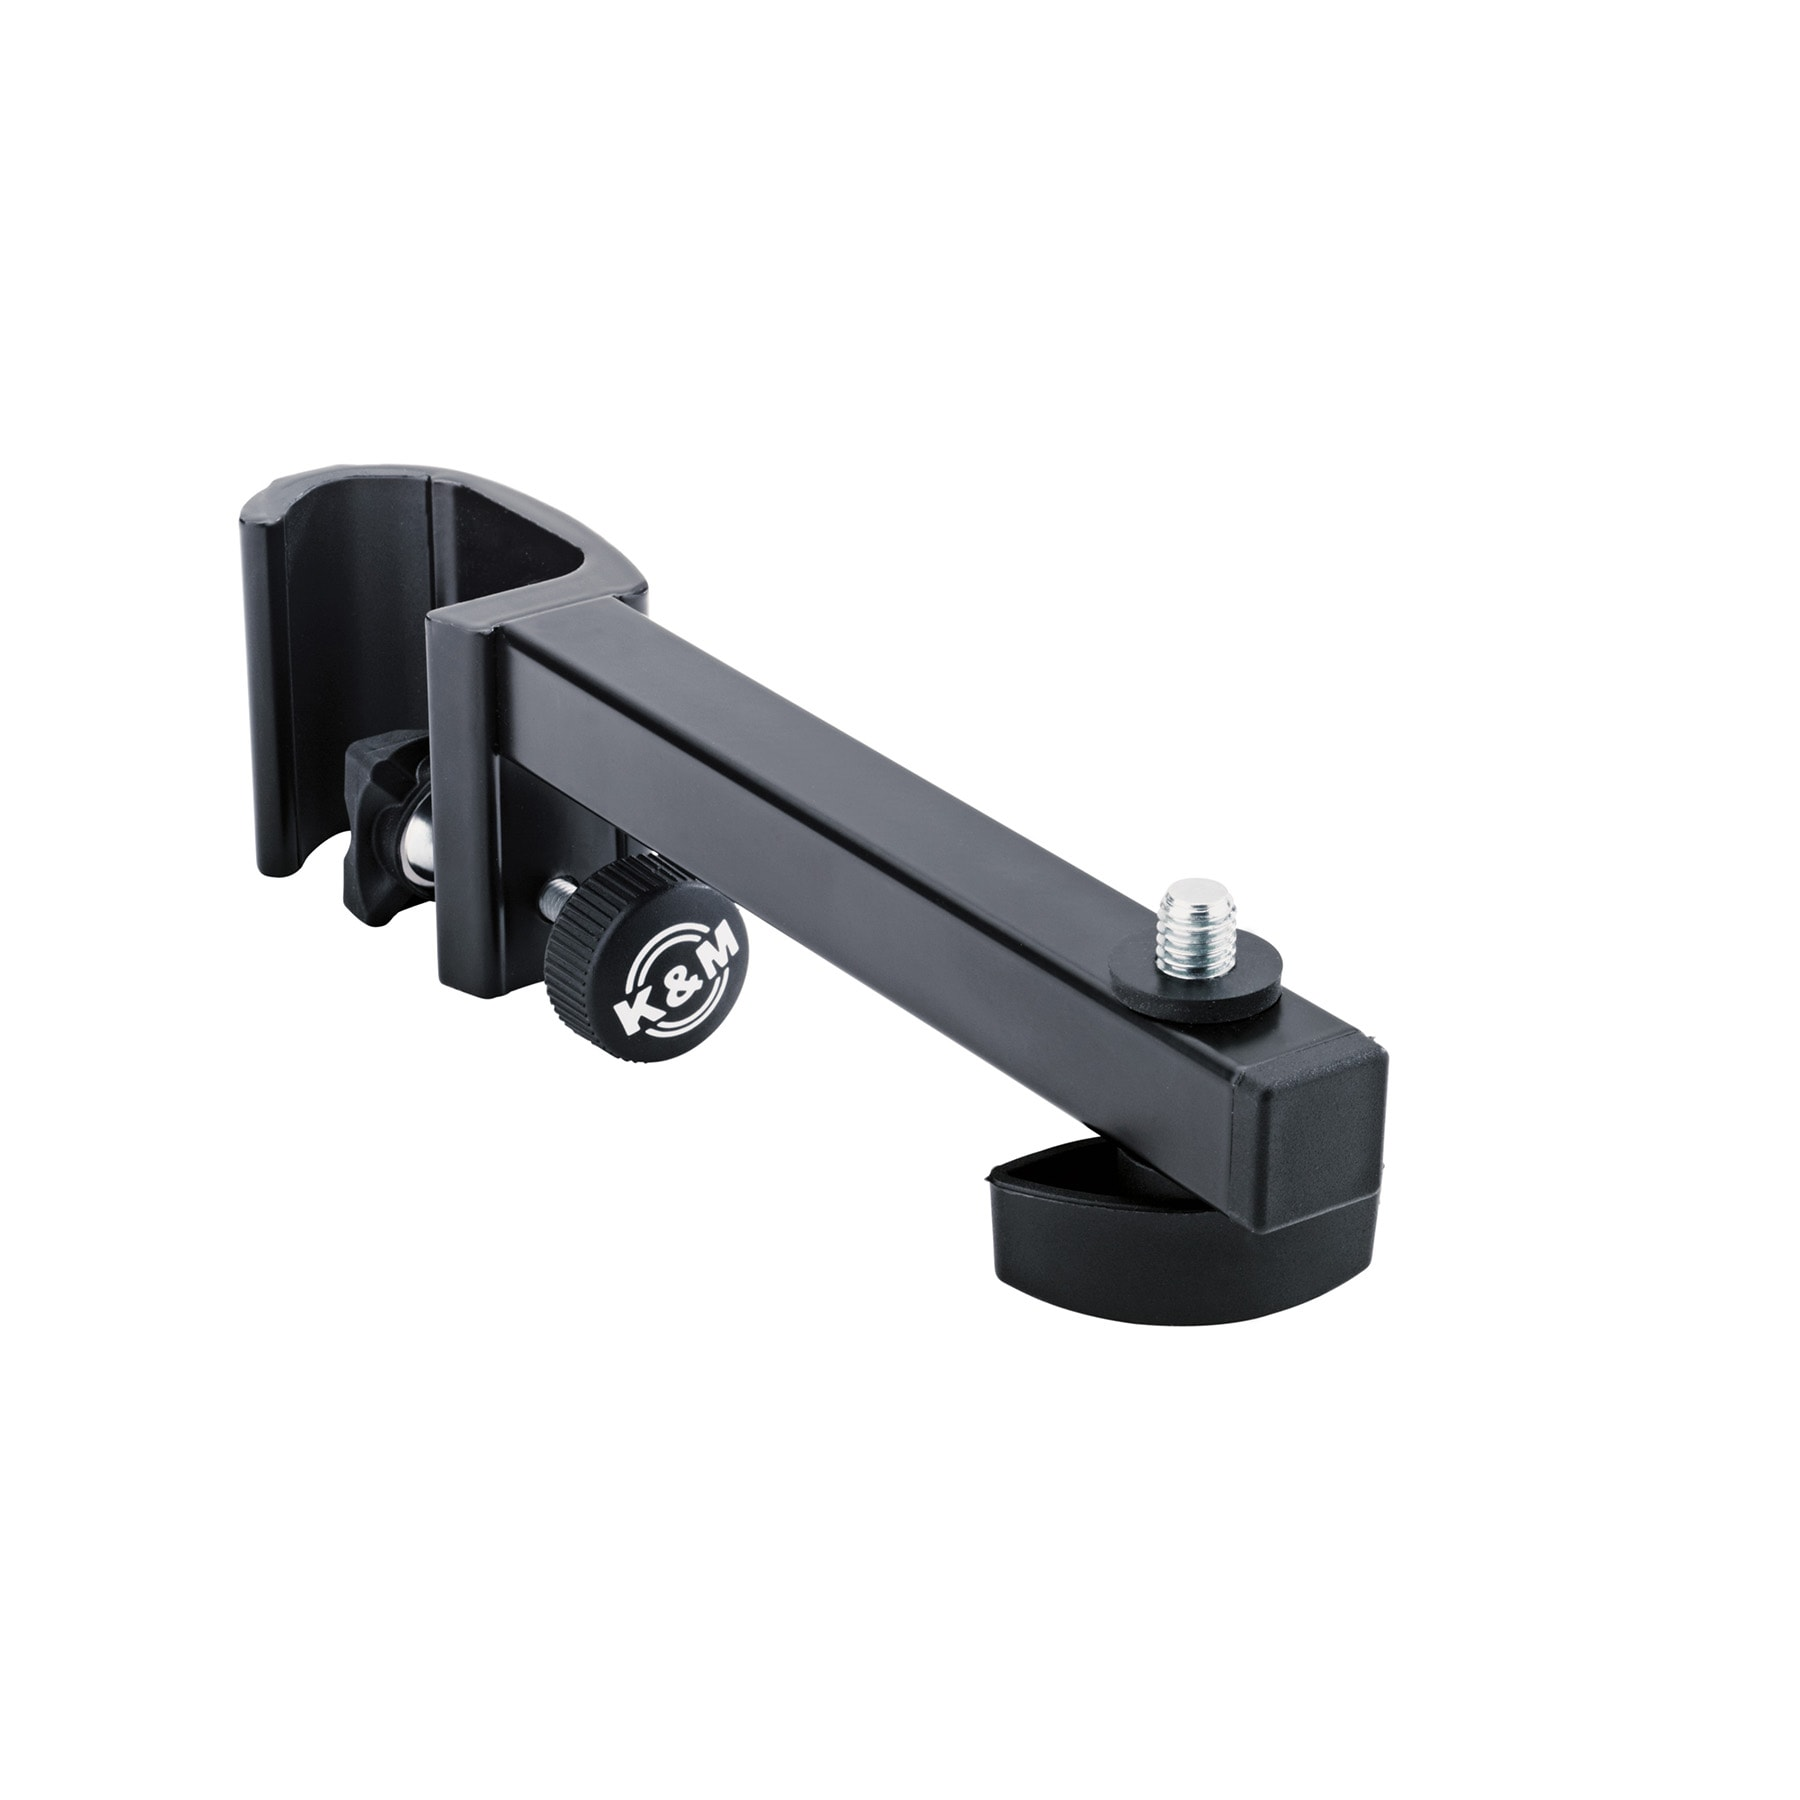 KM19715 - Universal clamping holder